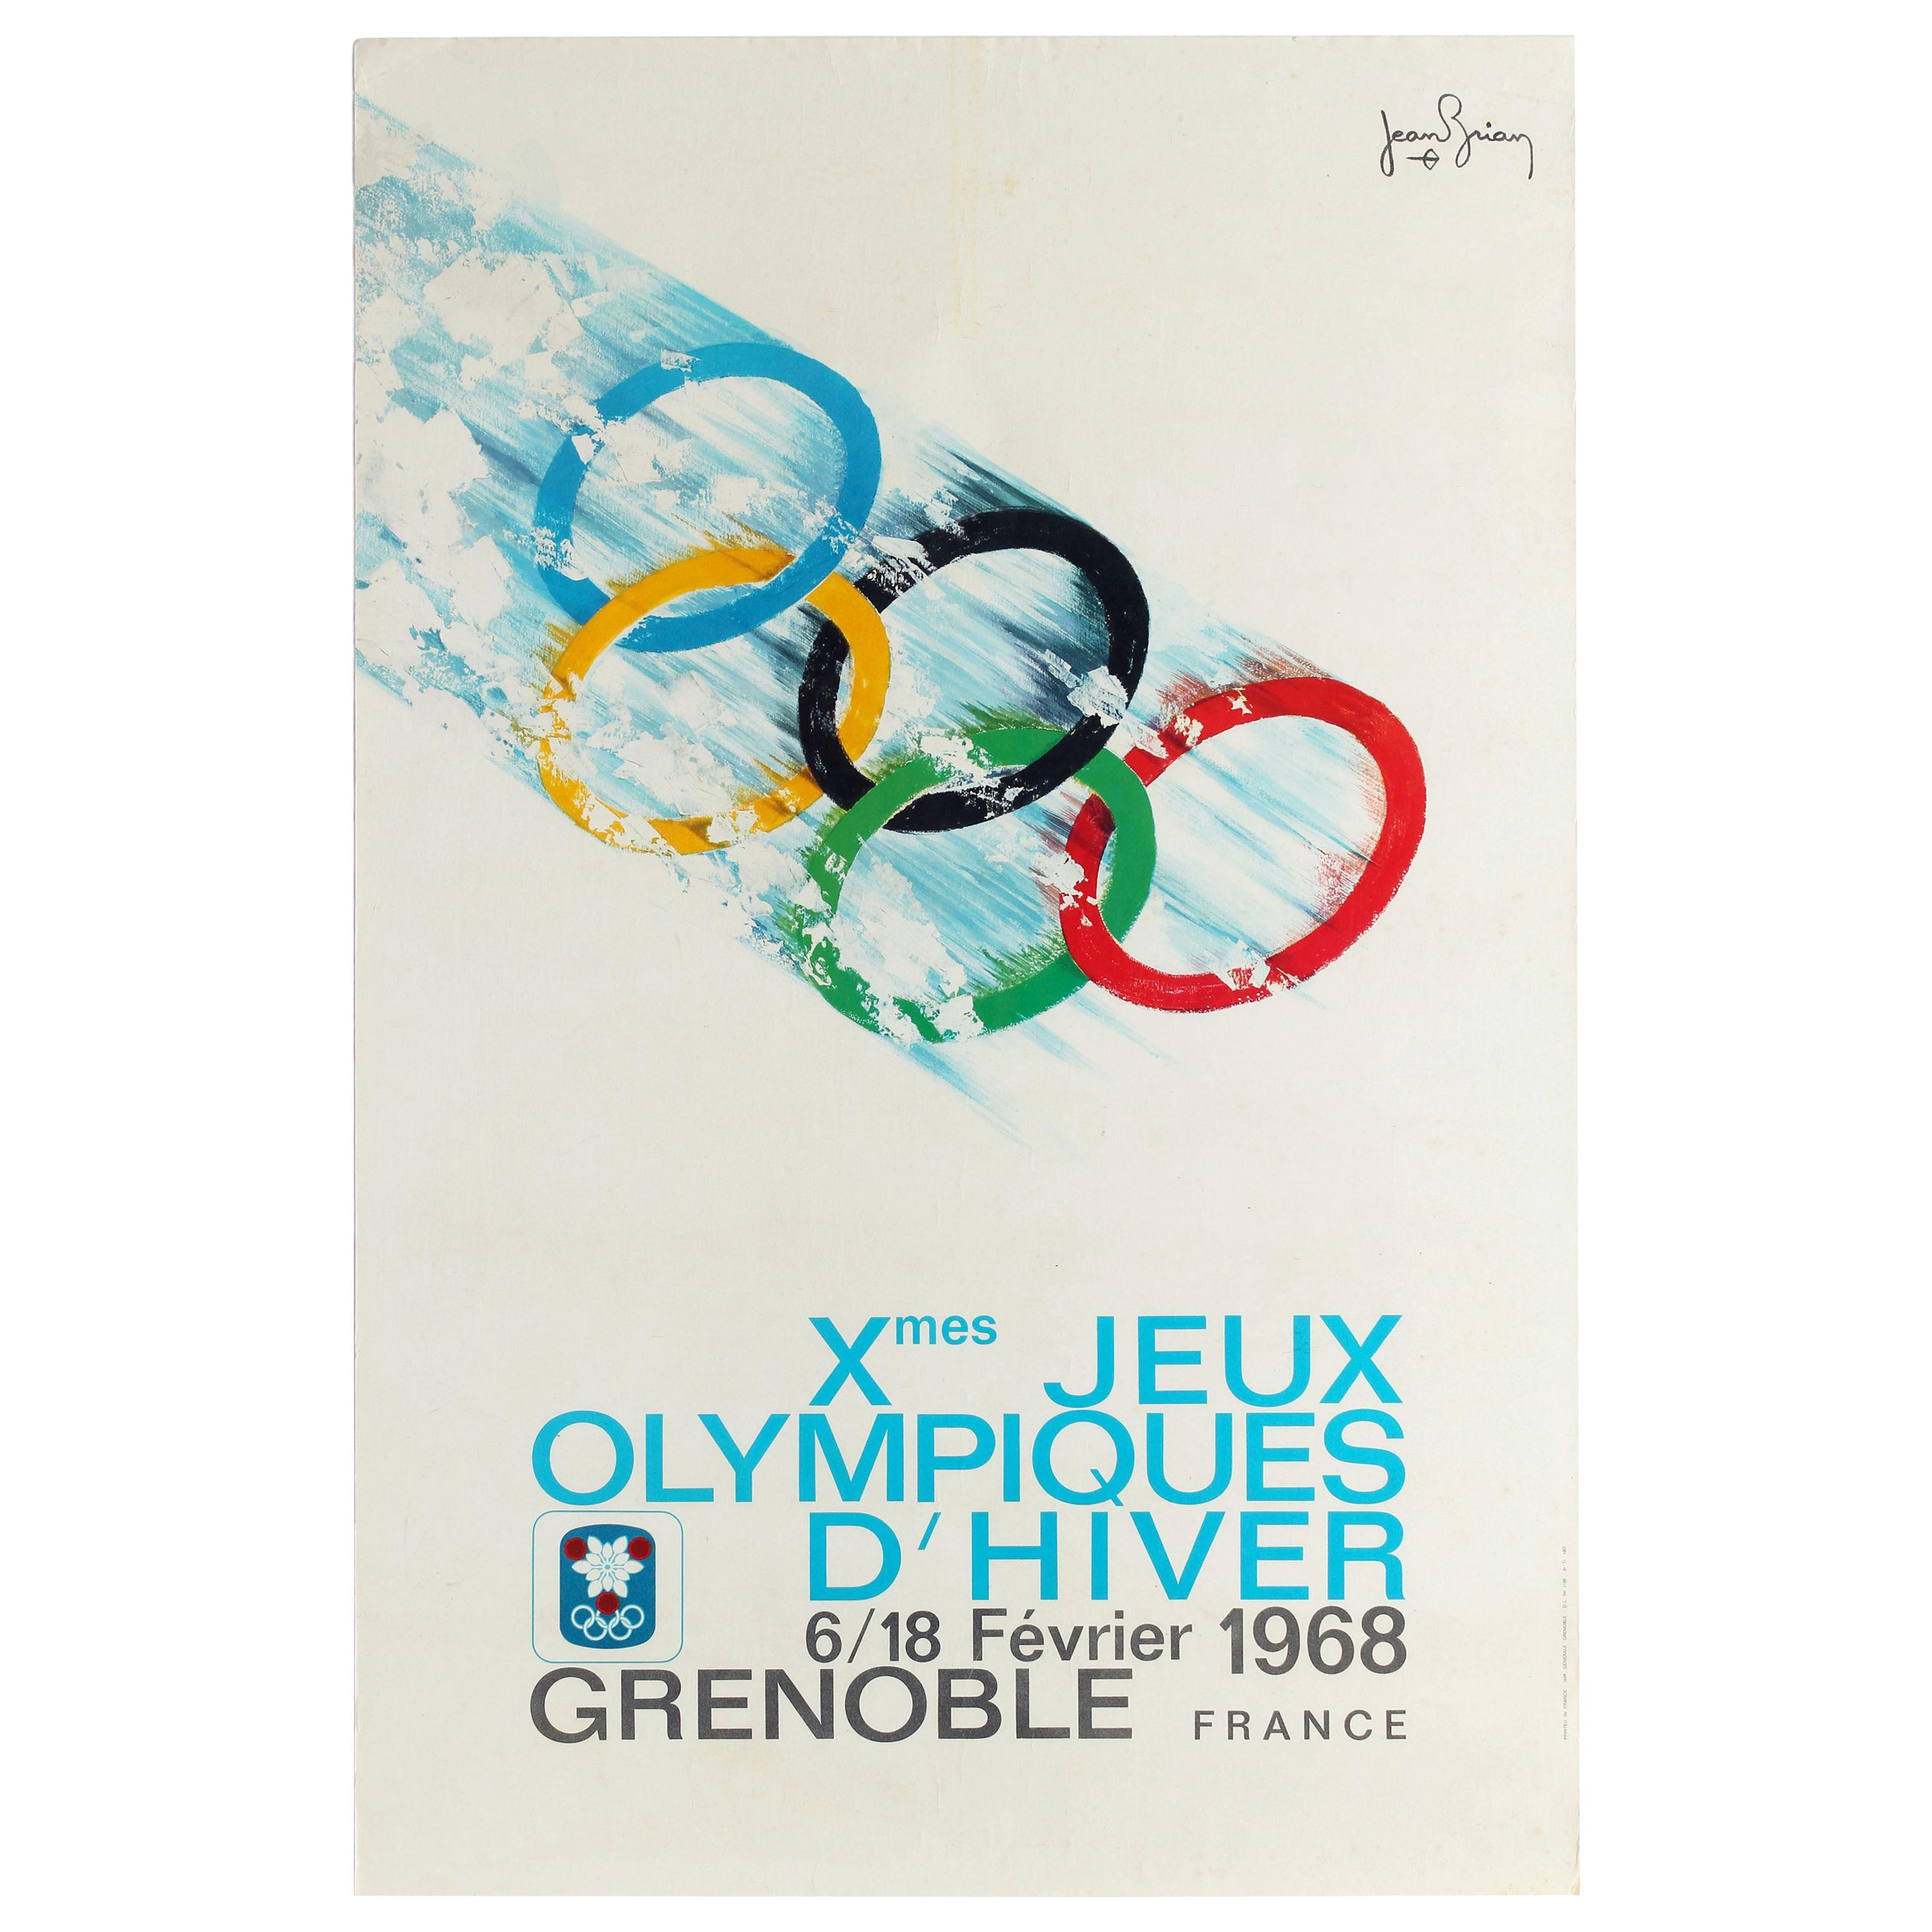 Original Vintage Poster 1968 Winter Olympic Games Grenoble Jeux Olympiques Sport